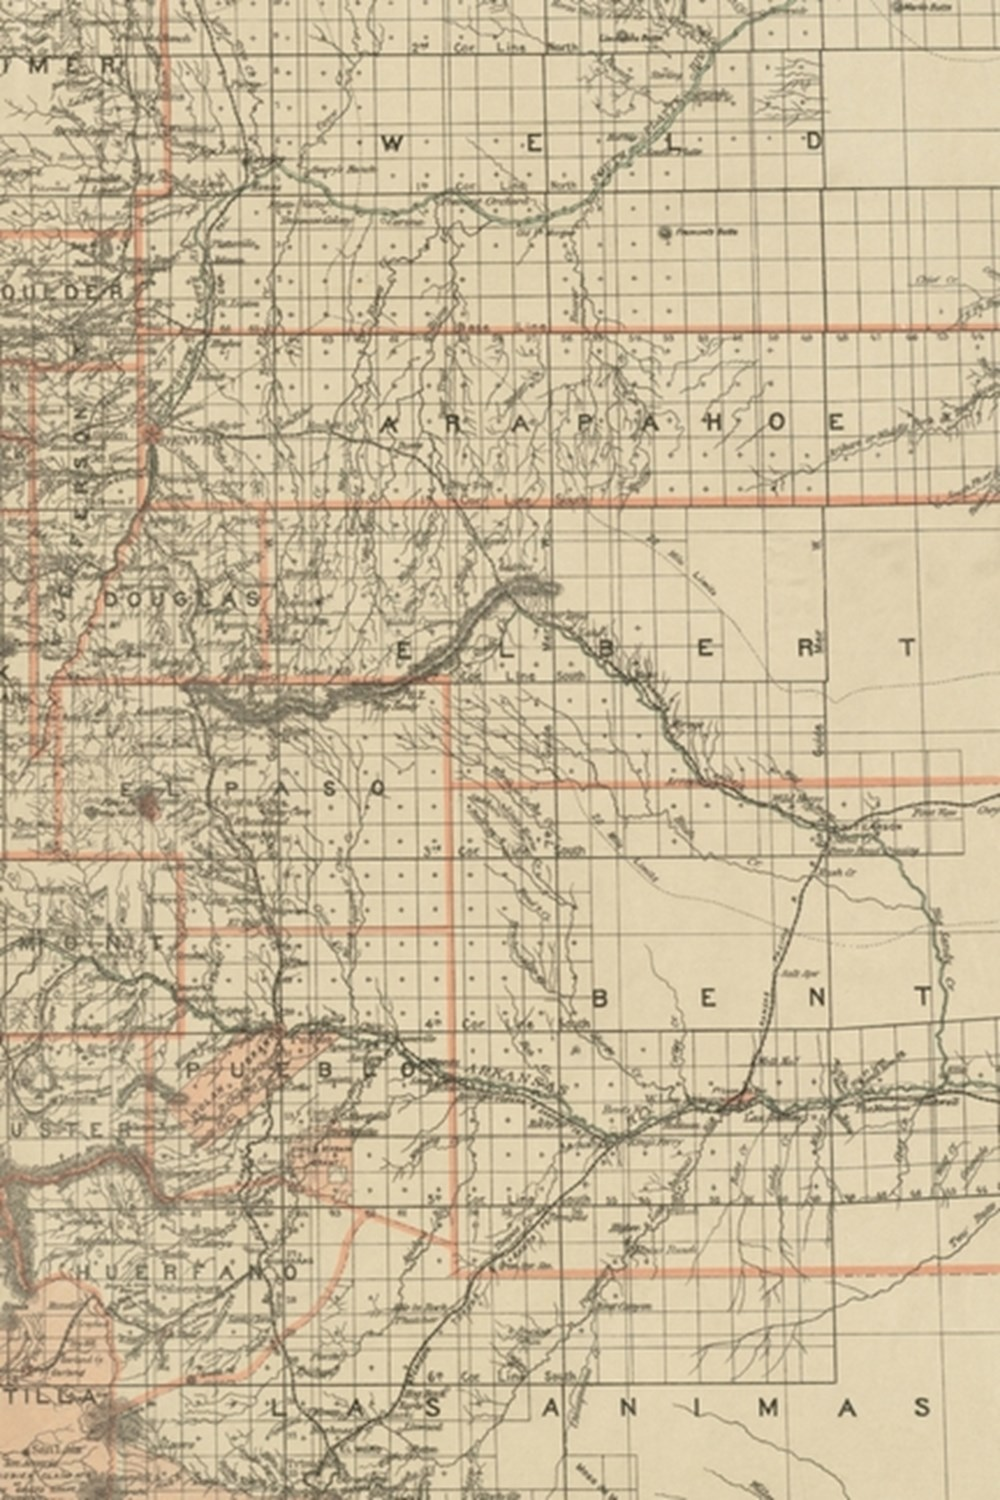 19th Century Map of the State of Colorado - A Poetose Notebook / Journal / Diary (50 pages/25 sheets